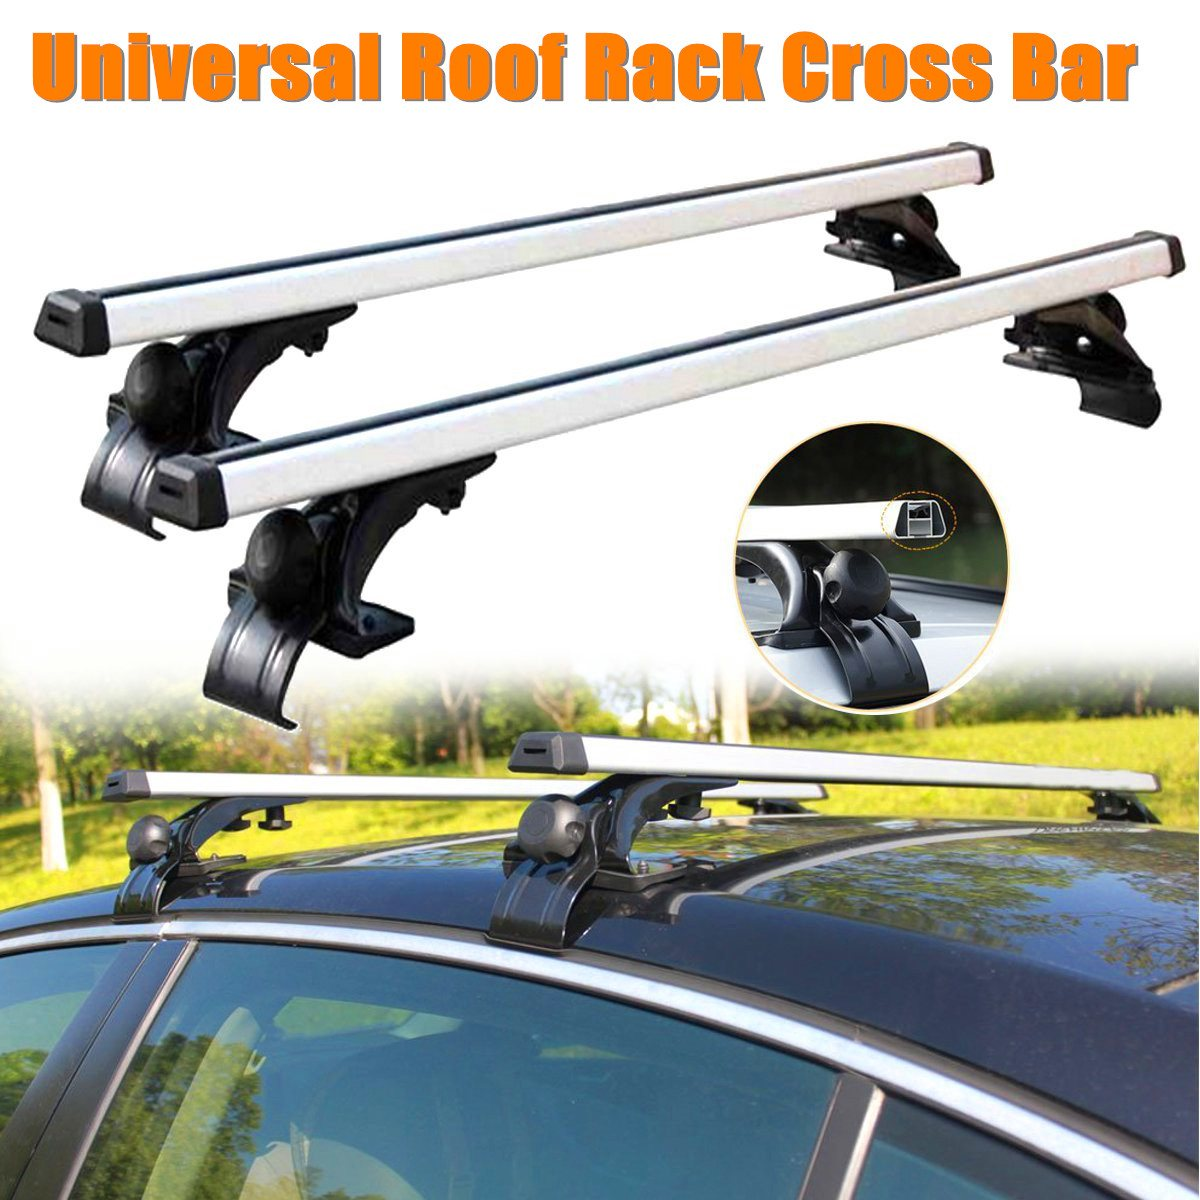 Universal Car Top Roof Rack Cross Tube Bar Cargo Luggage Carrier Rack Silver Fit For 4 Door Models Vehicles 48